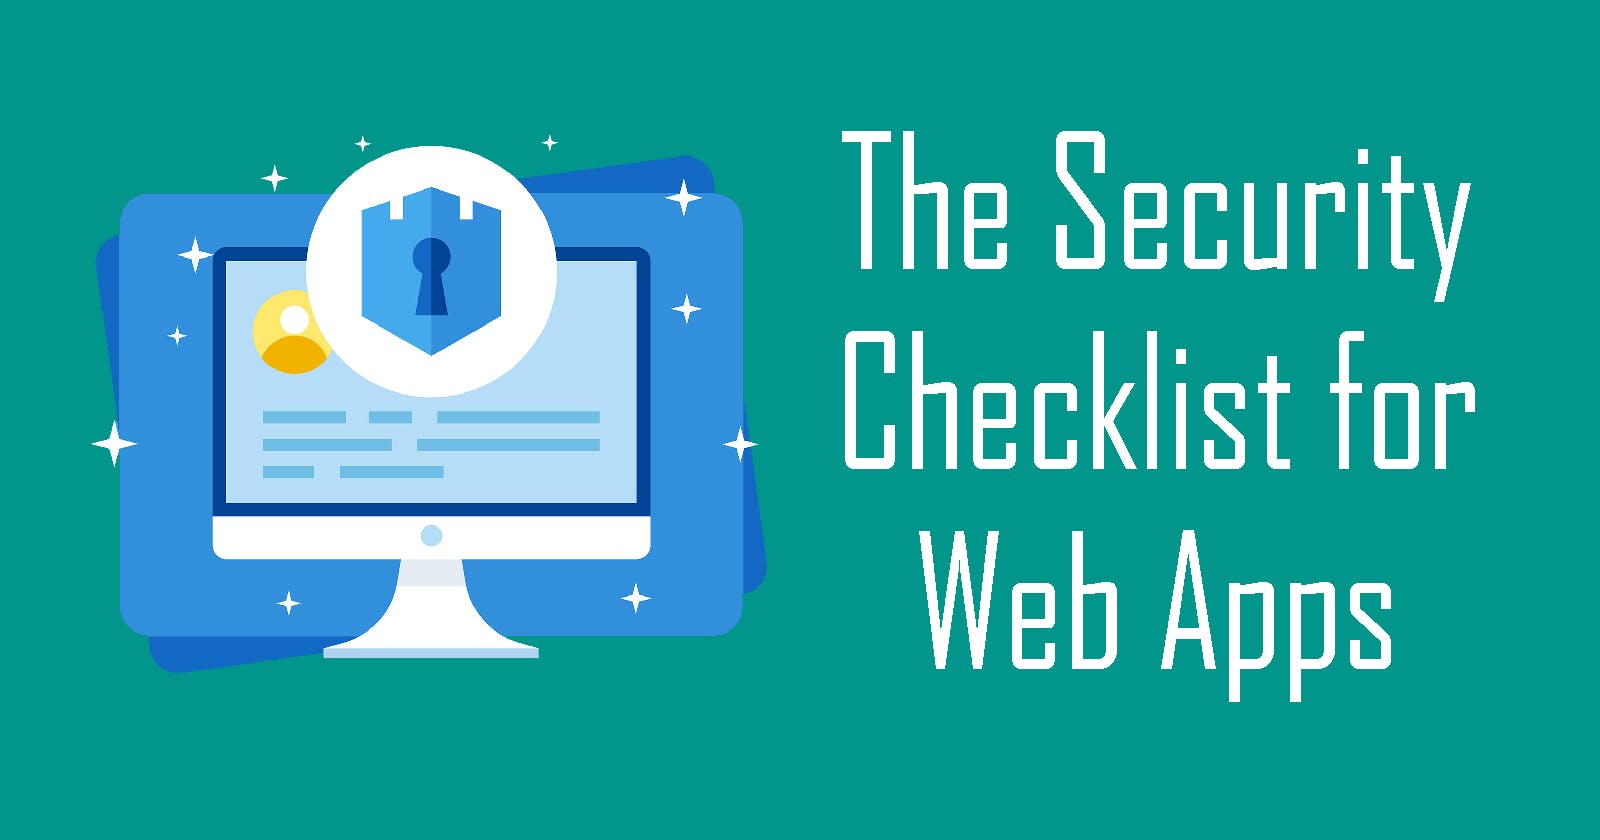 The Must-Have Security Checklist for Web Apps